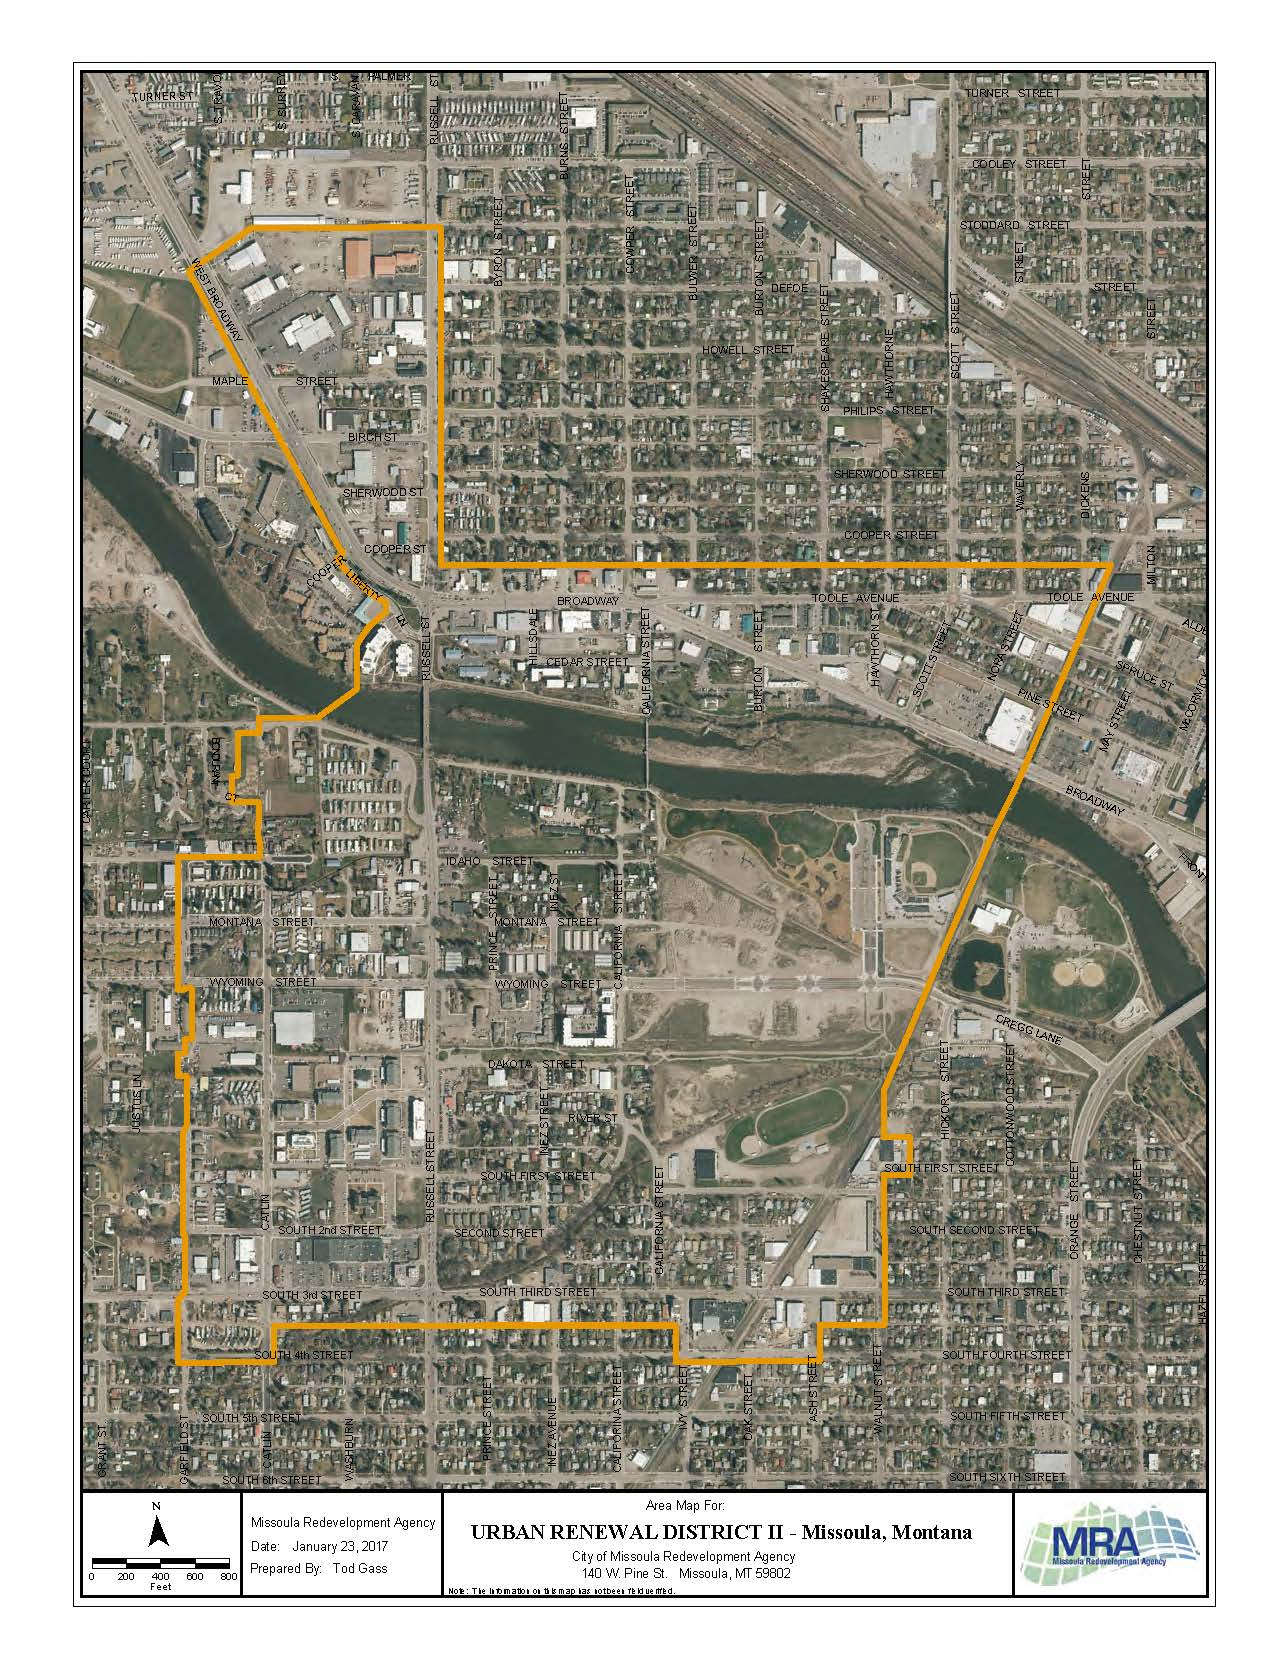 Map of Urban Renewal District II